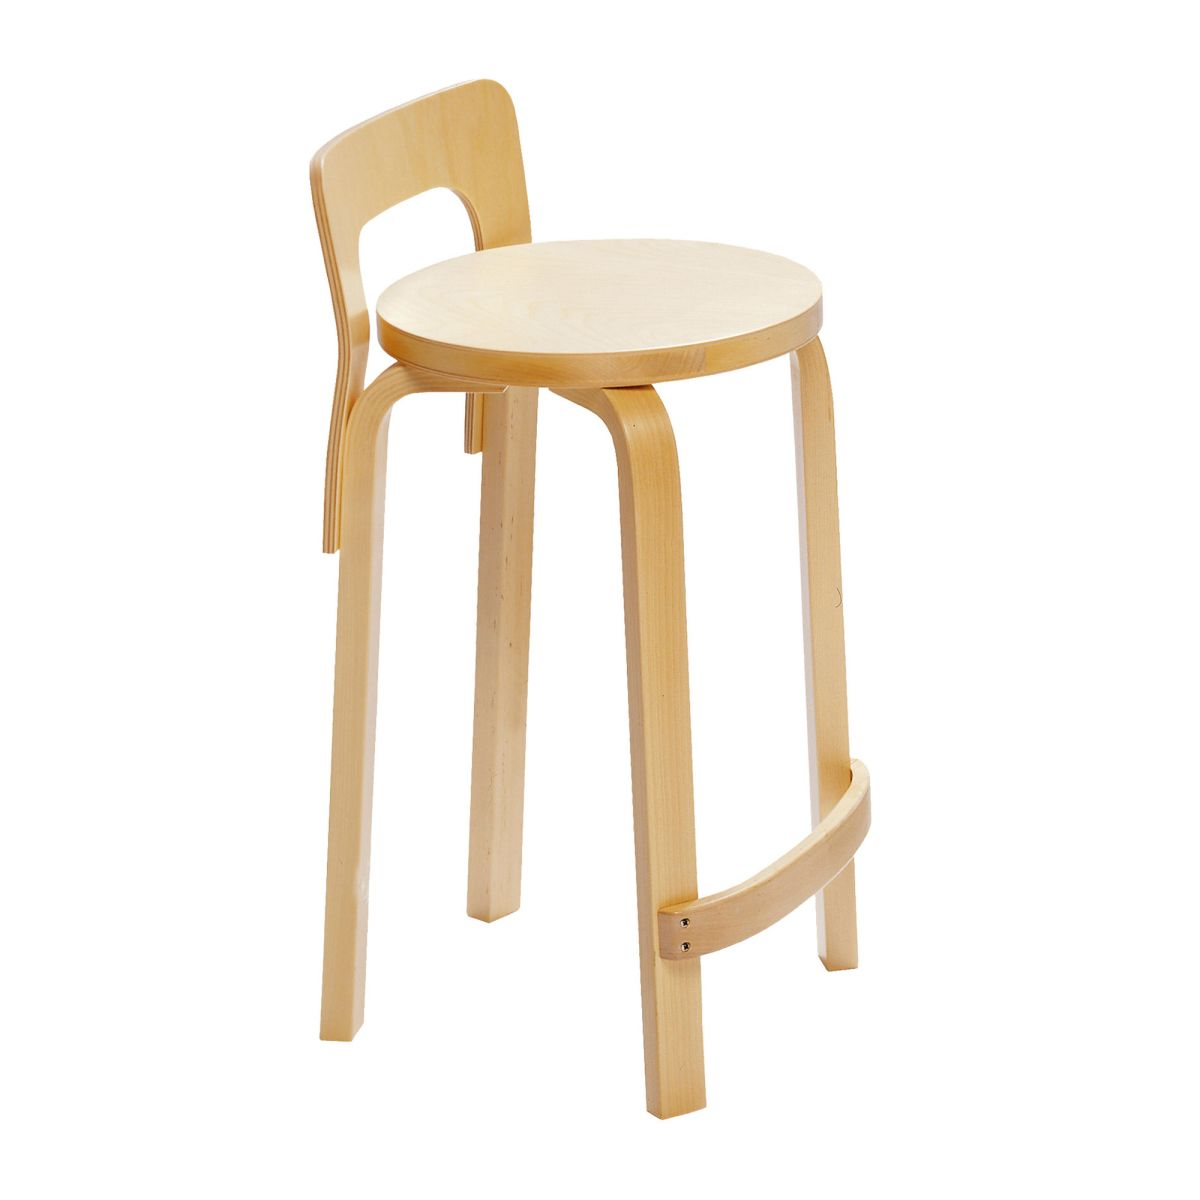 High_Chair_K65_clear_lacquer_WEB